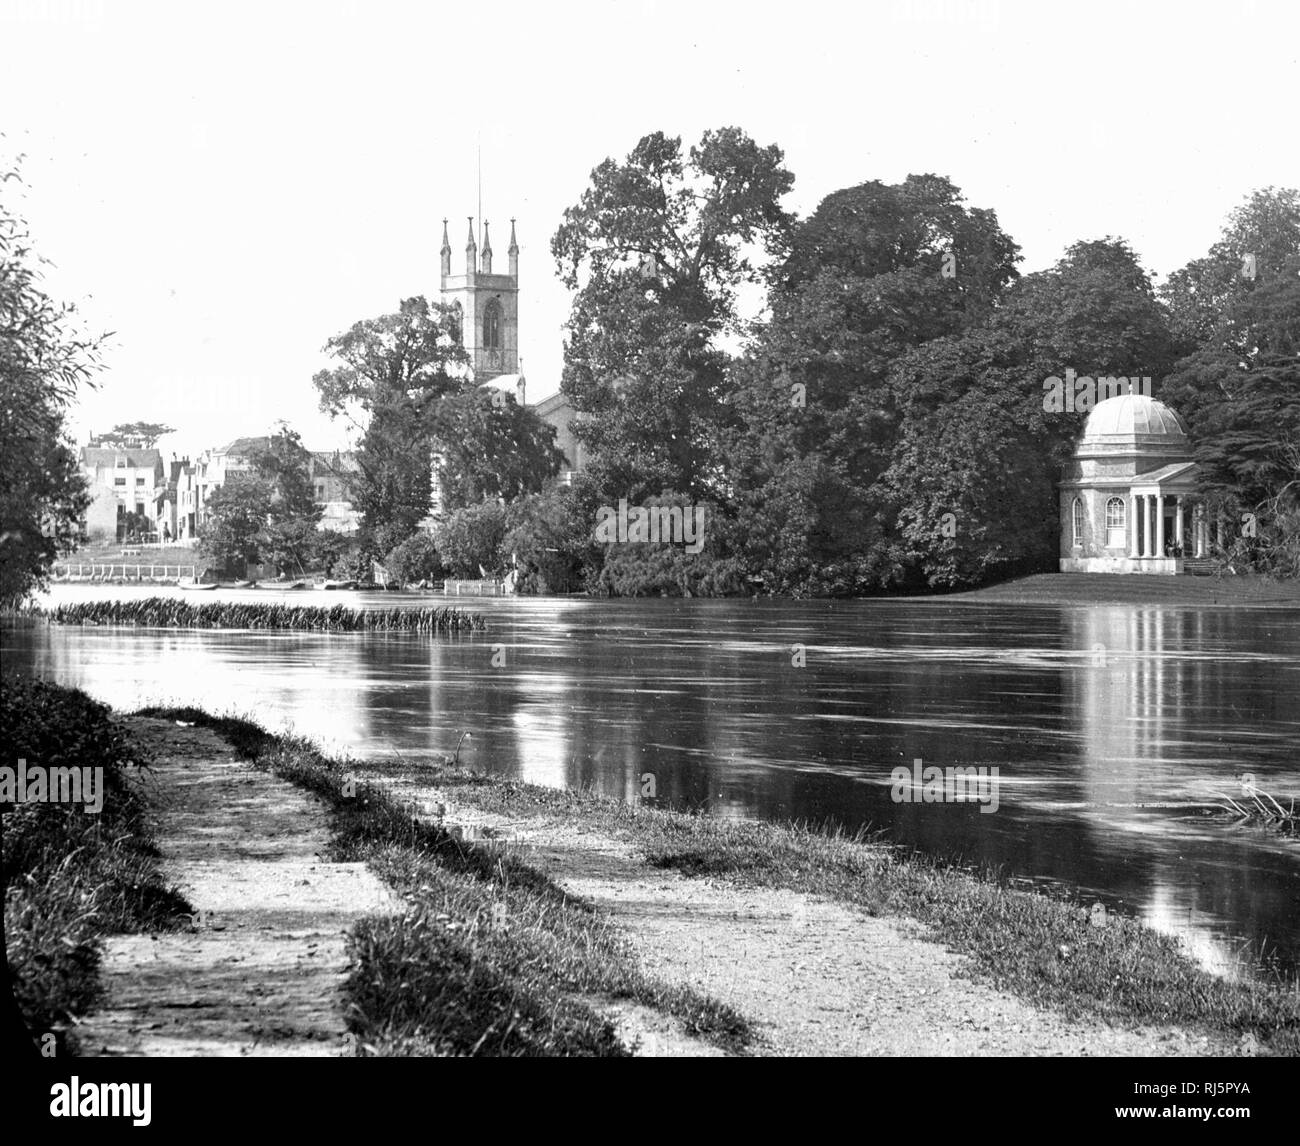 River Thames, Hampton - Stock Image